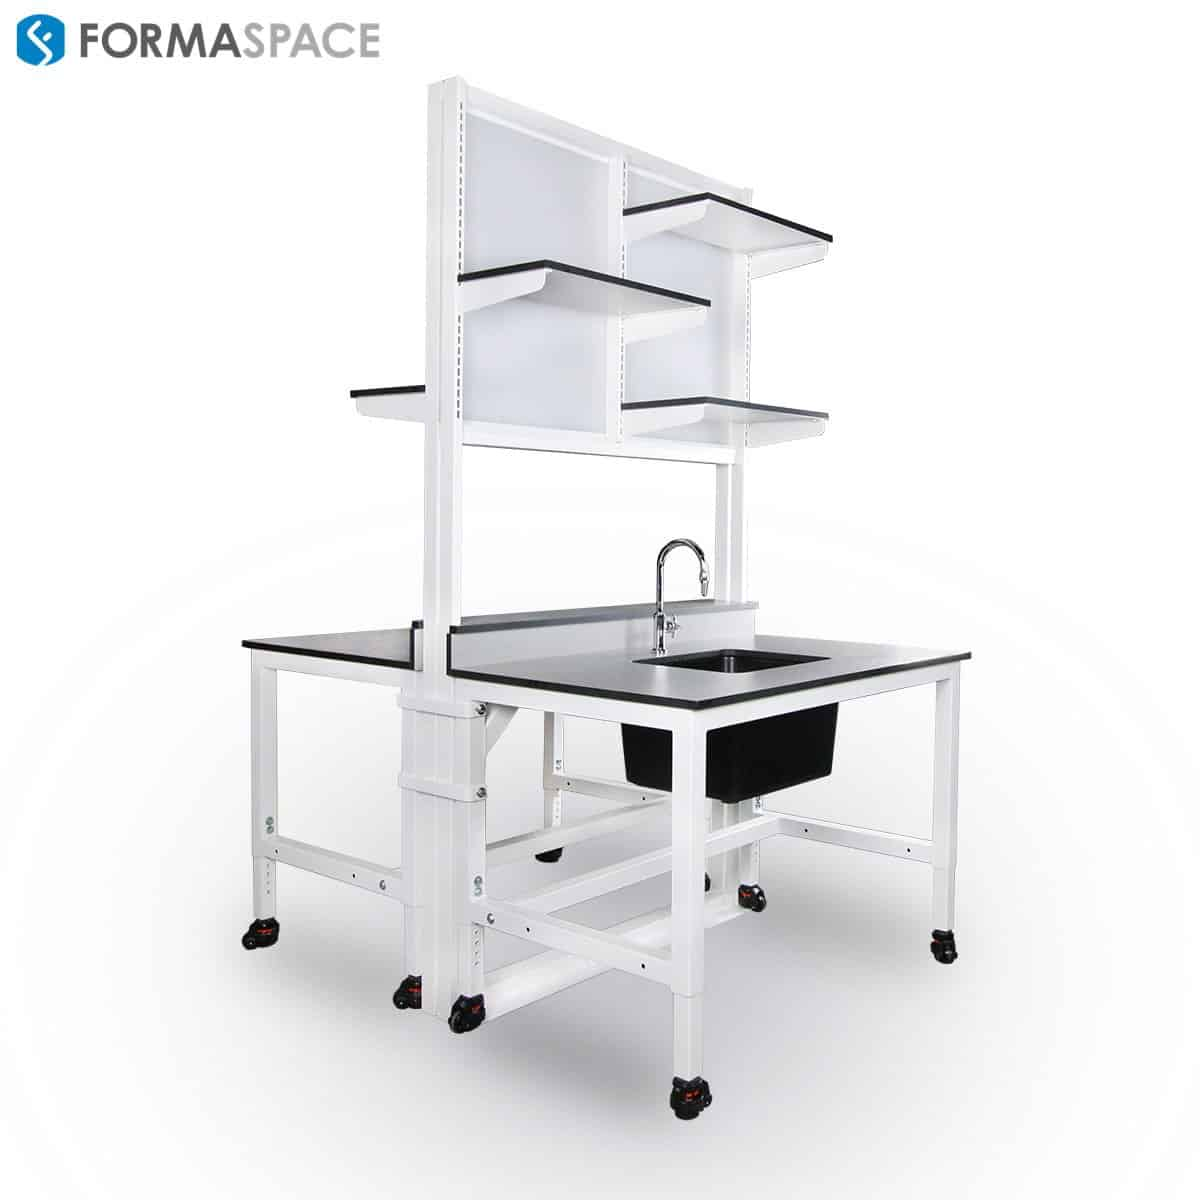 FabWall™ lab partition modules